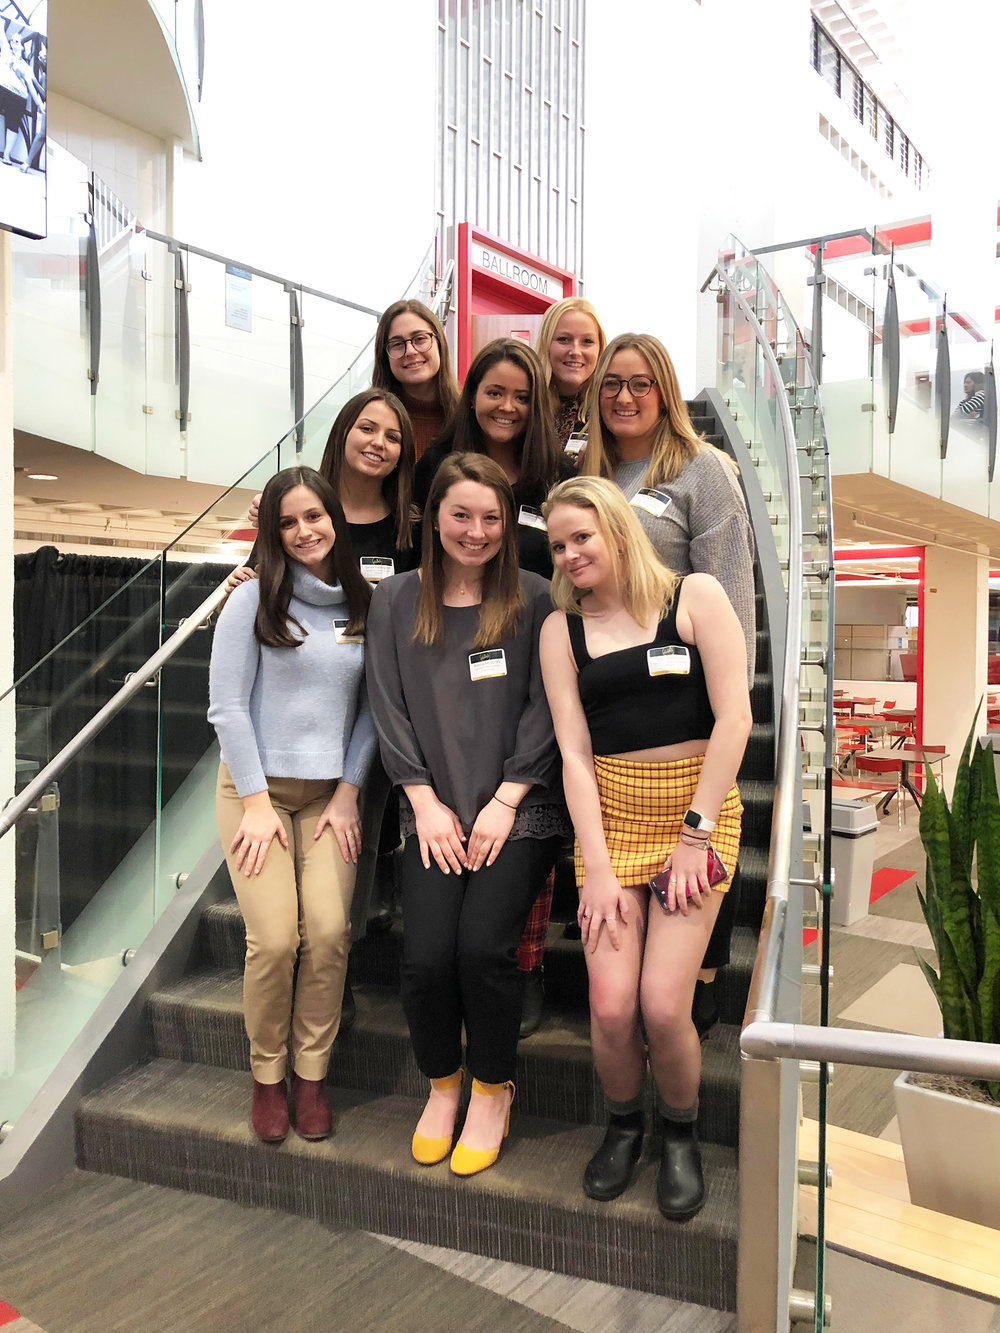 Sigma Delta Tau's Gamma Chi chapter is unique to Geneseo, known for their commitment to leadership development and philanthropy. SDT's executive board (pictured above) attended a conference in Boston last month where they had the opportunity to collaborate with other chapters to hone their leadership skills (Courtesy of Gillian Lindstrom).